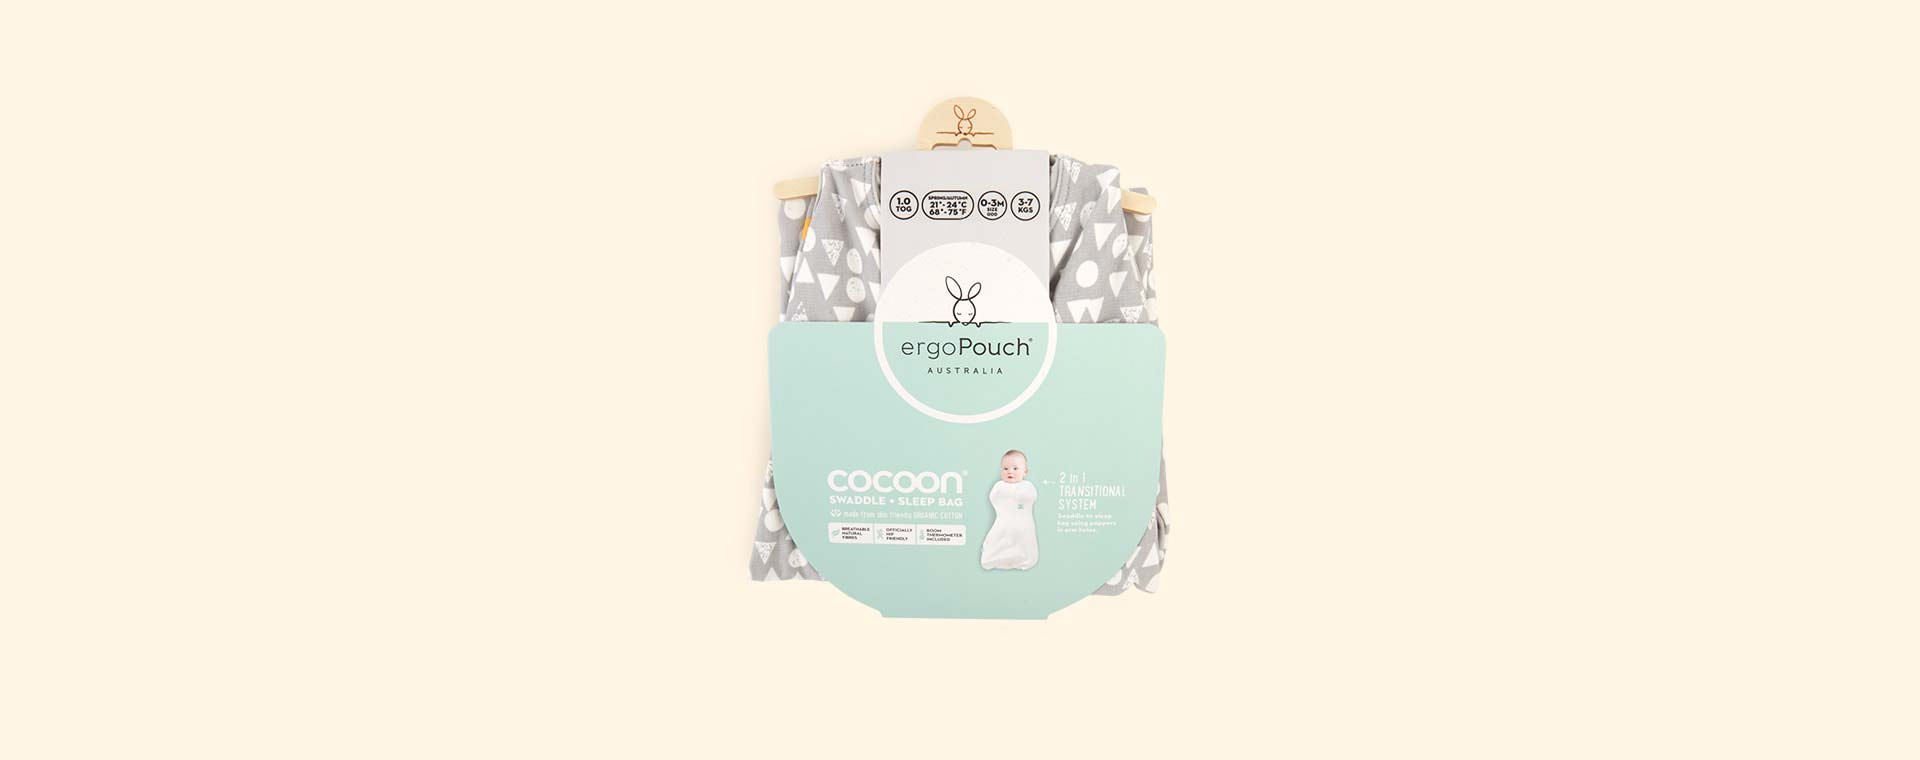 Triangle Pops Ergopouch Ergococoon 1 Tog